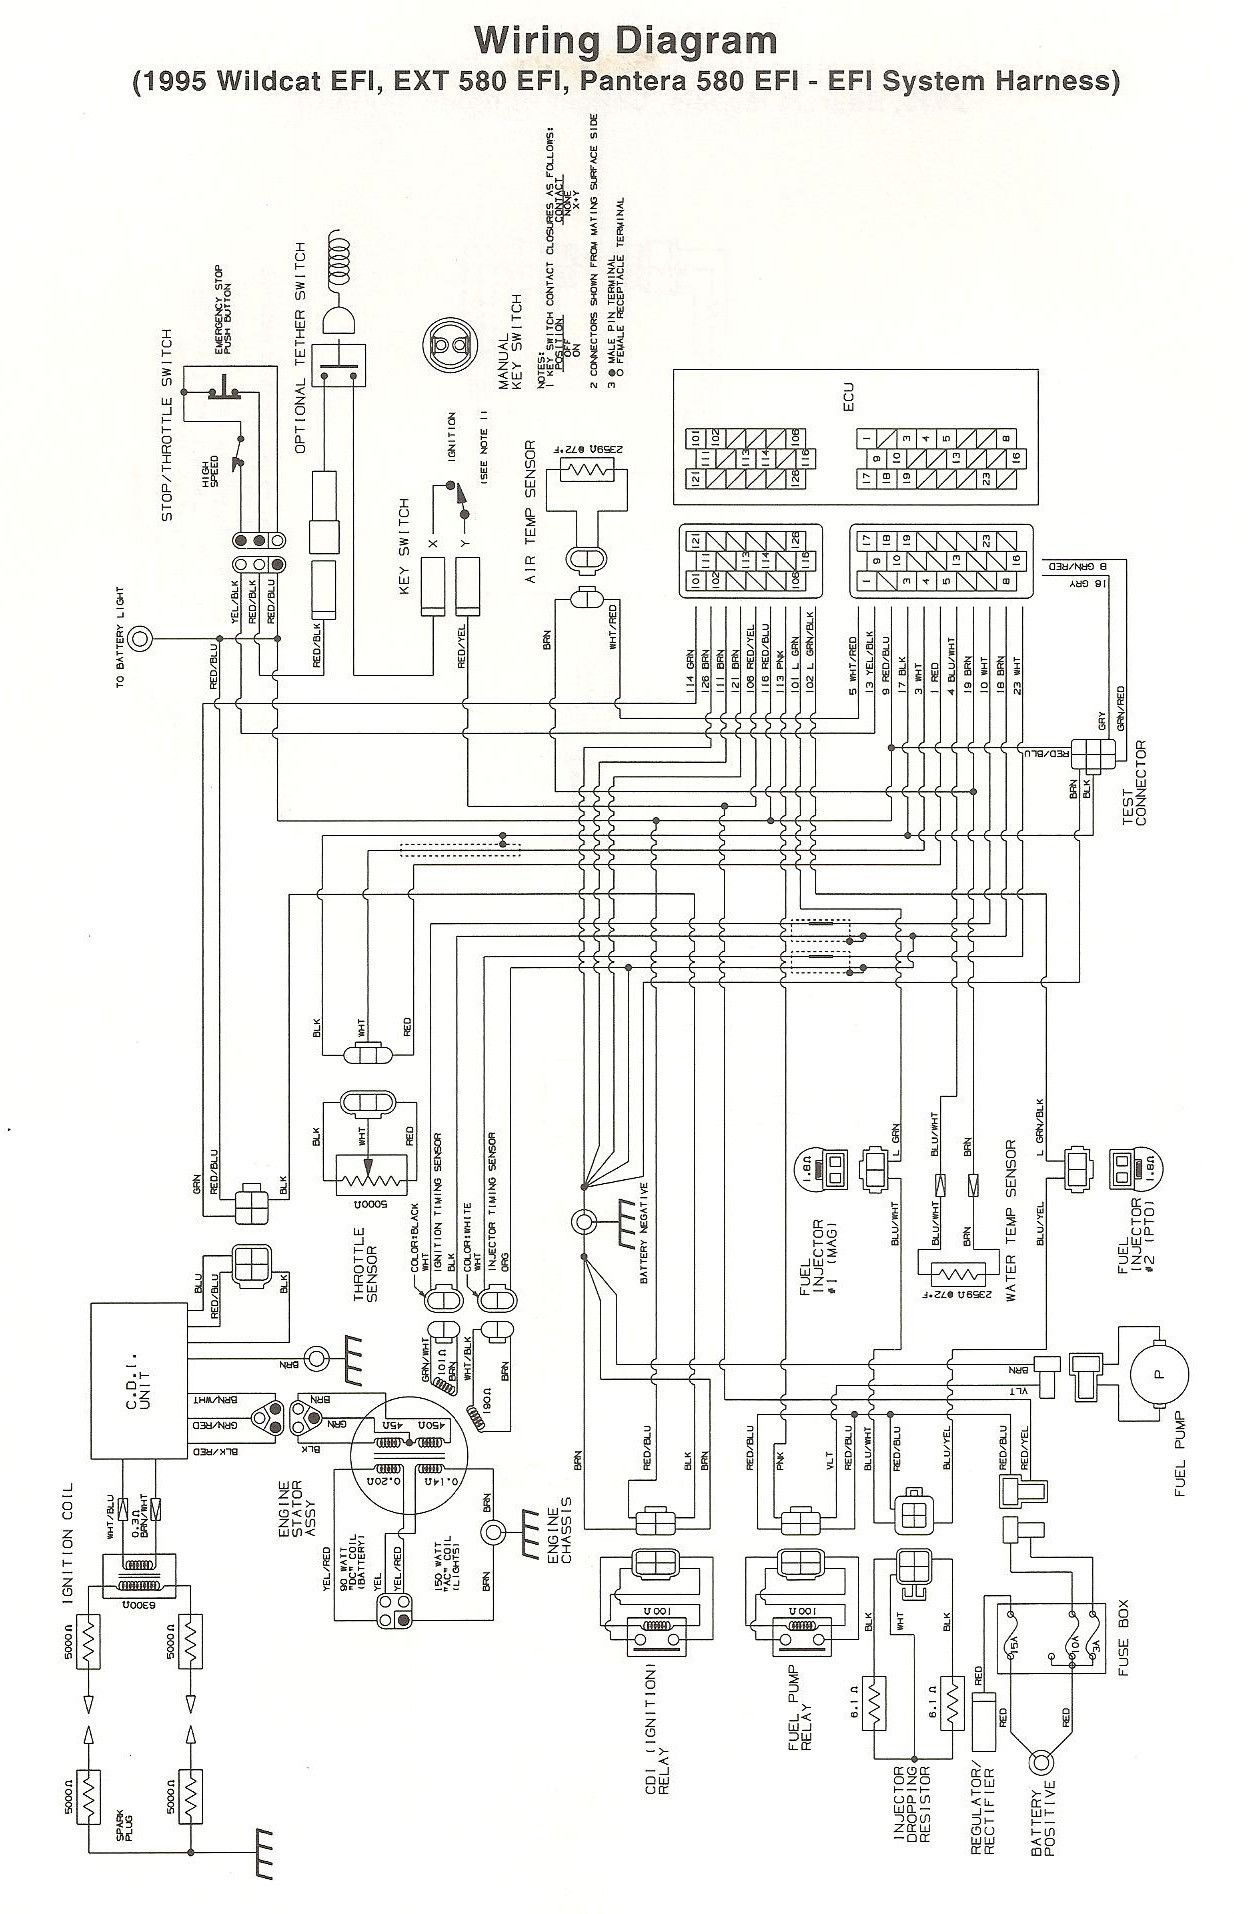 yamaha dt200r wiring diagram yamaha grizzly 660 wiring diagram | free wiring diagram yamaha xt350 wiring diagram #6